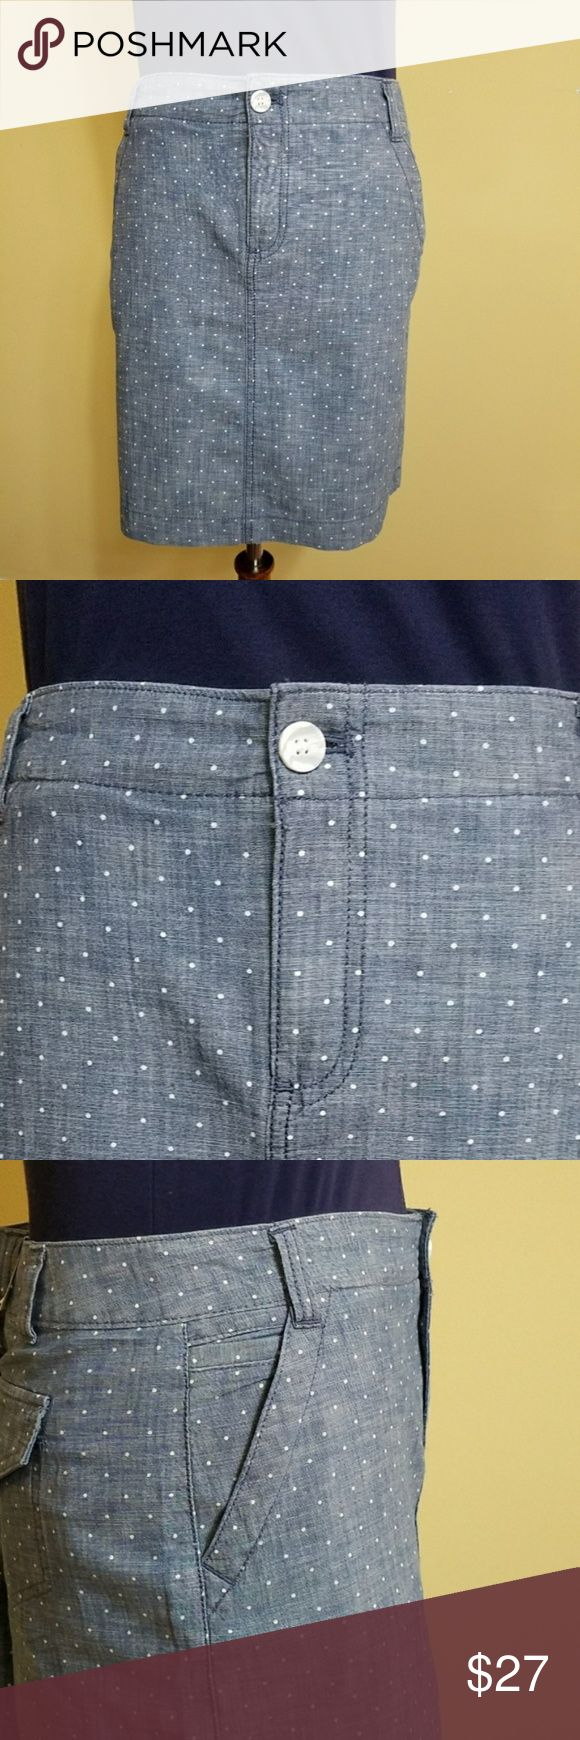 Tommy Hilfiger Polka Dots Chambray Skirt sz 6 NWT Tommy Hilfiger Polka Dots Chambray Pencil Skirt size 6. New with tags 100% cotton.  2 front pockets 2 back flap pockets Light blue with white dots Button and zipper for closure on the front Belt loops The material is lighter and fresh, perfect for Spring and Summer.  16.5 inches waist (laying flat), length: 18 inches. D028 Tommy Hilfiger Skirts Mini